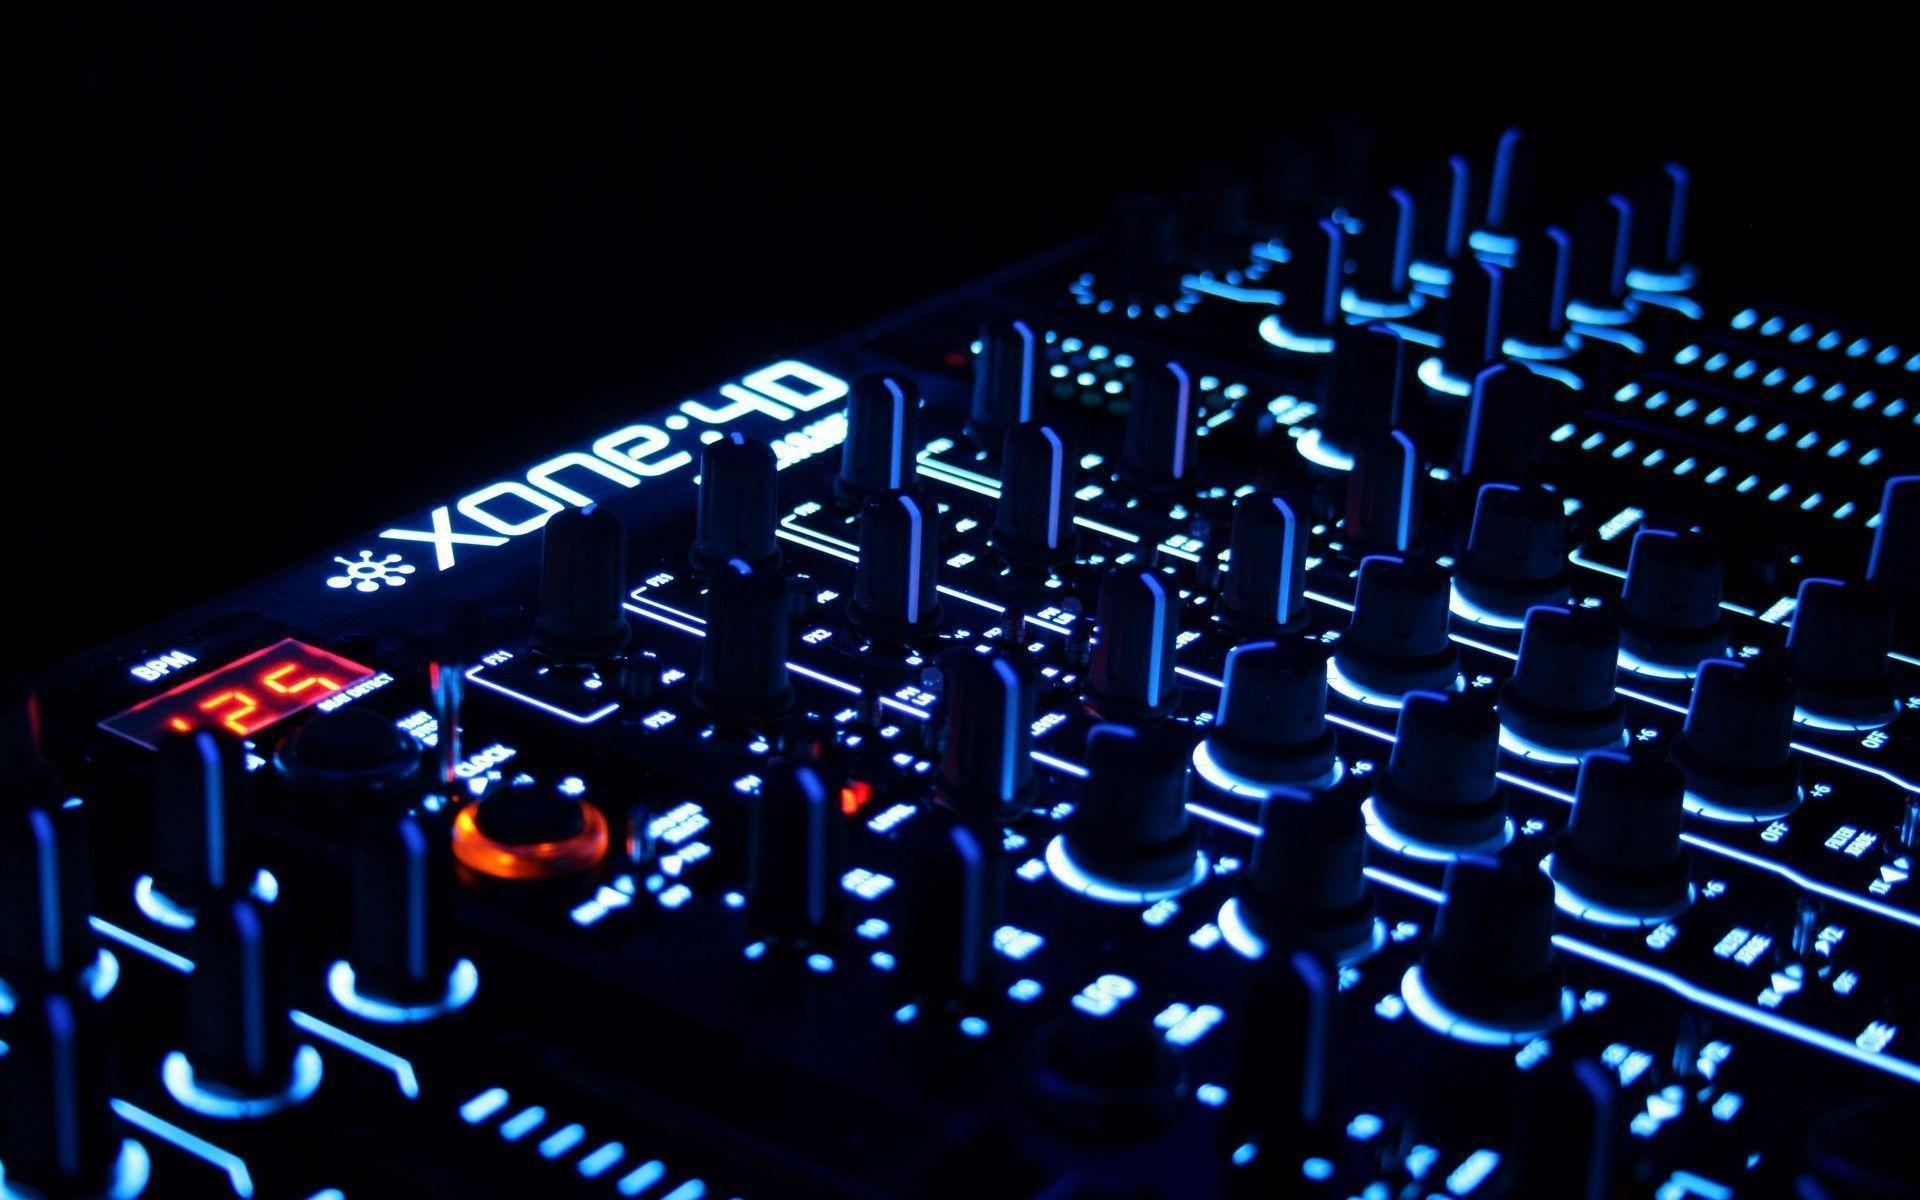 dj background wallpaper for computer - photo #5